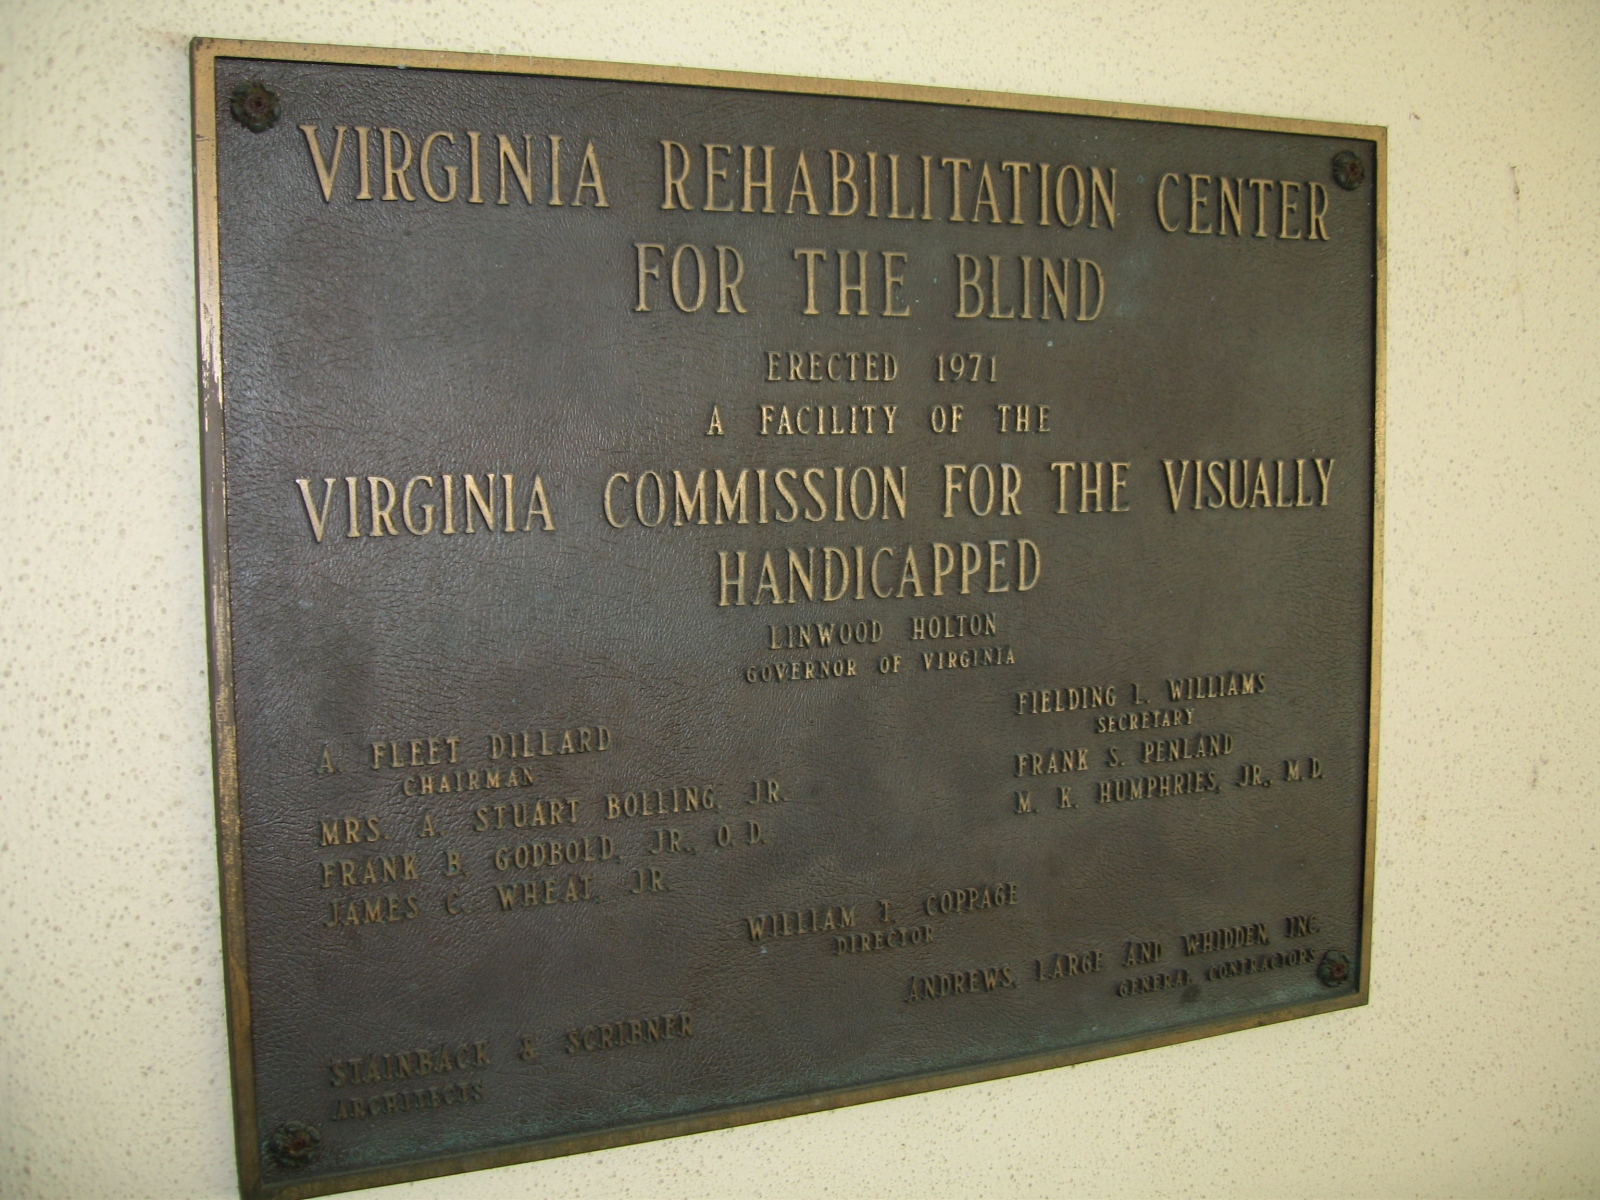 """A plaque hangs on a wall and reads """"Virginia Rehabilitation Center for the Blind"""" and """"Virginia Commission for the Visually Handicapped"""""""